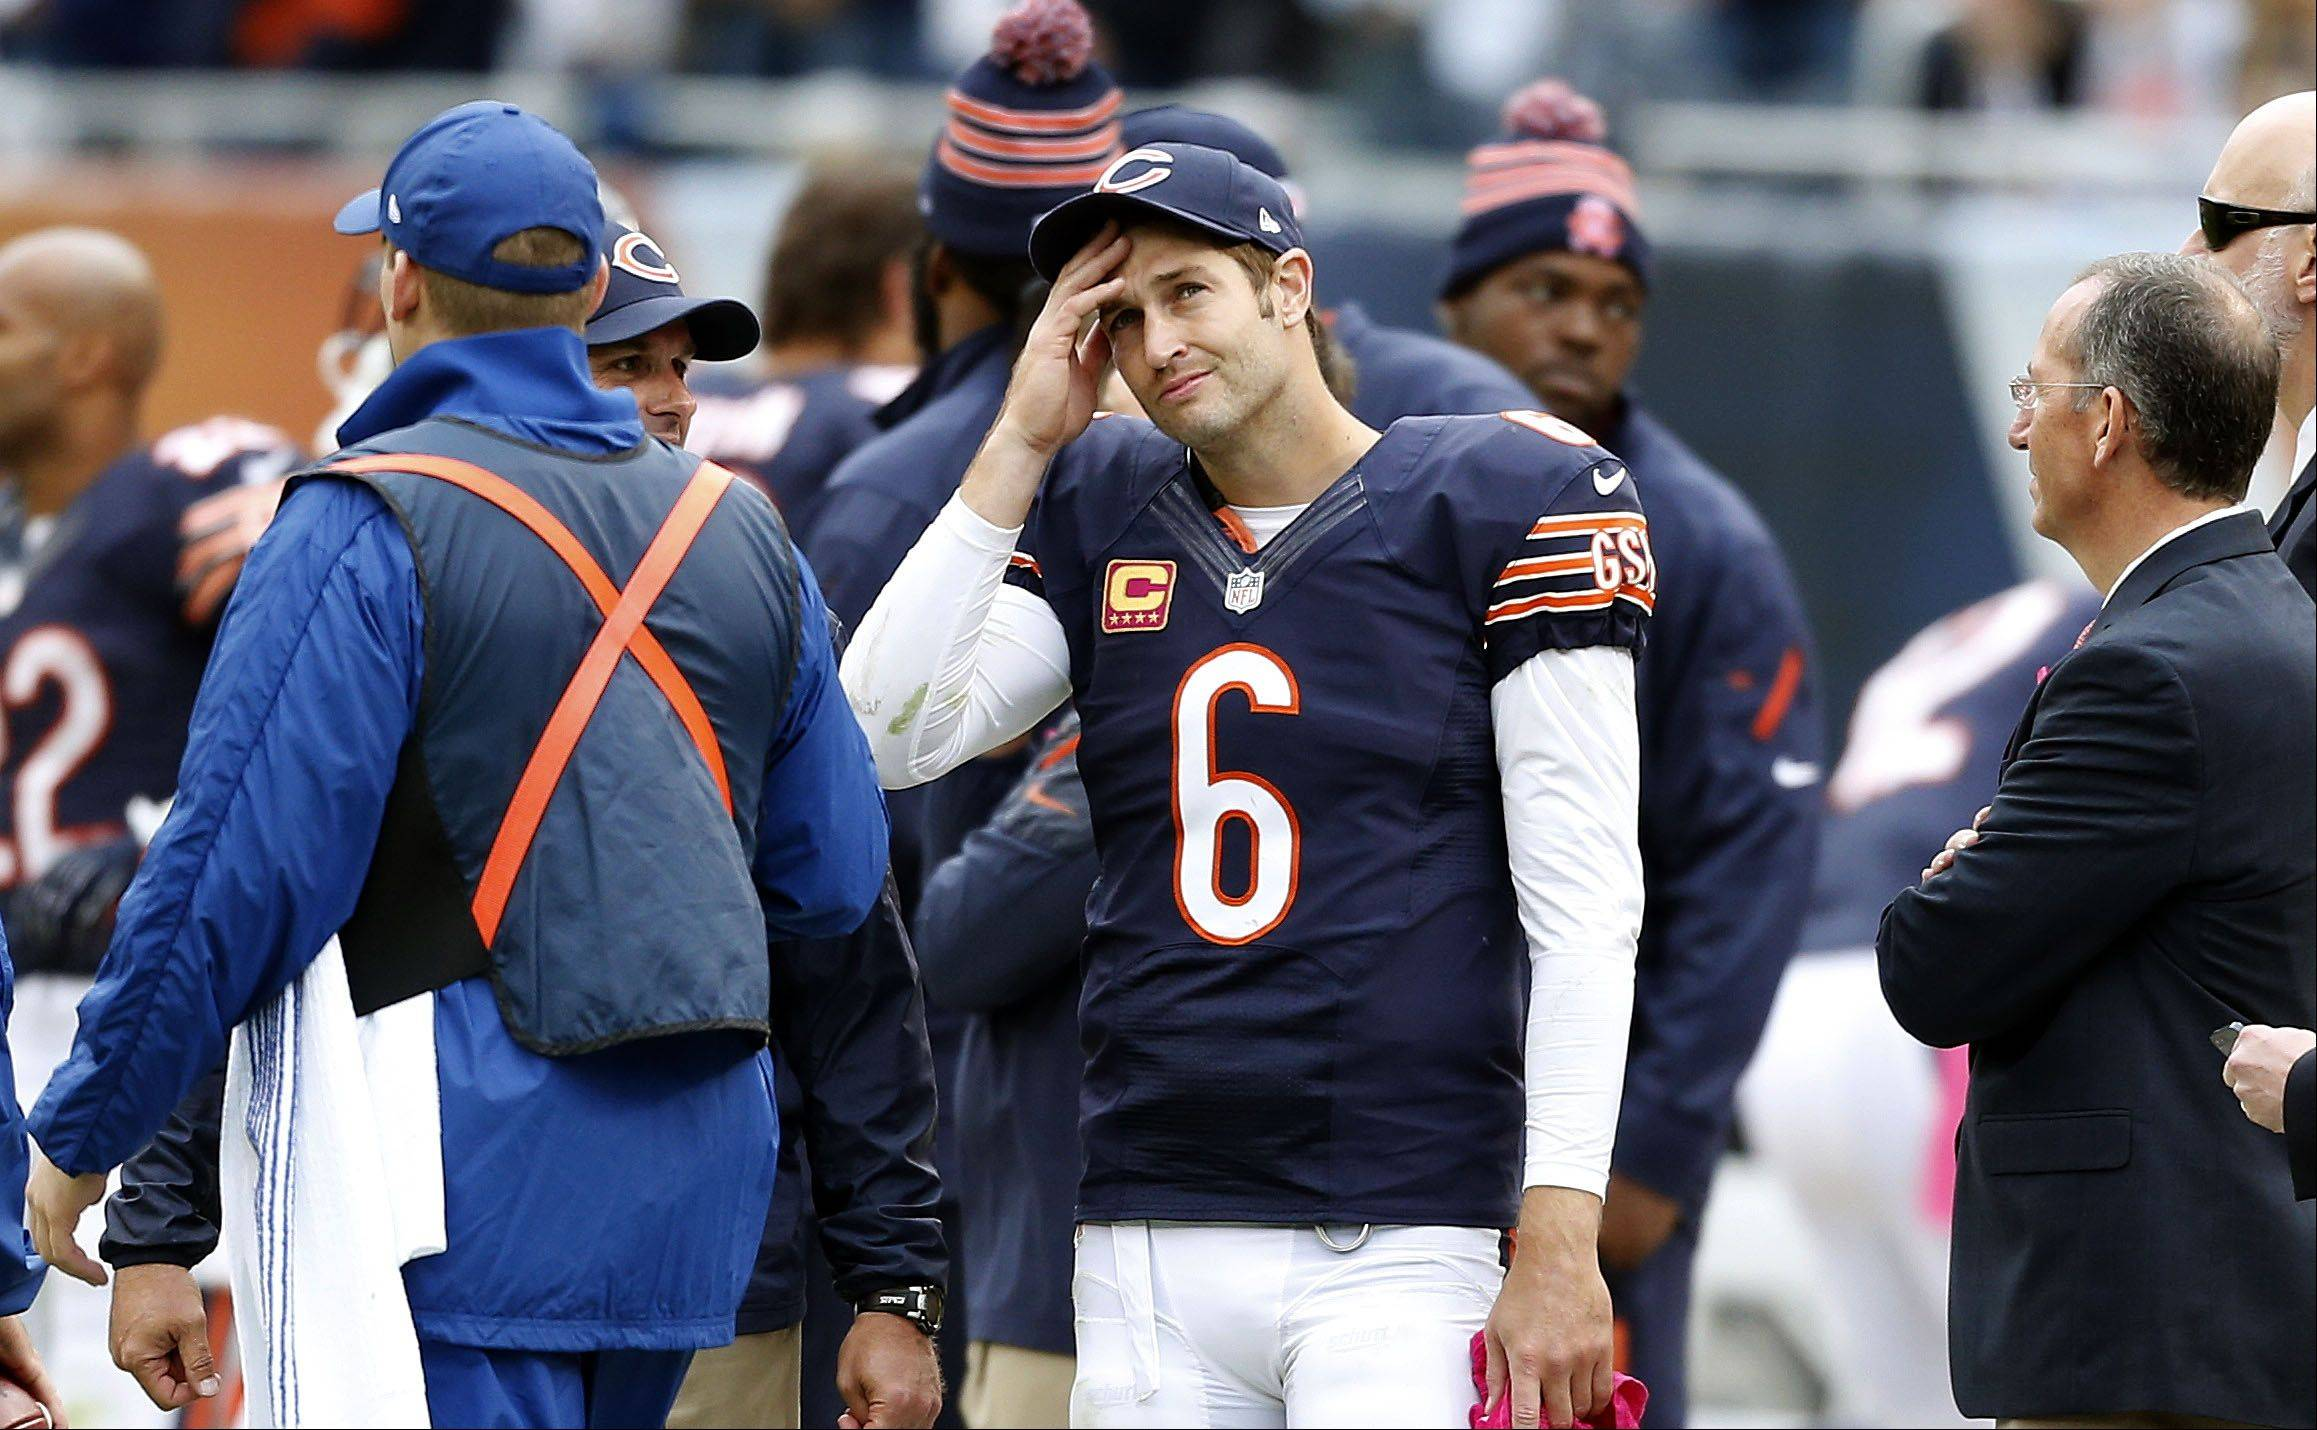 Chicago Bears quarterback Jay Cutler looks upset on the sidelines during the Bears 26-18 loss to the New Orleans Saints Sunday at Soldier Field in Chicago.